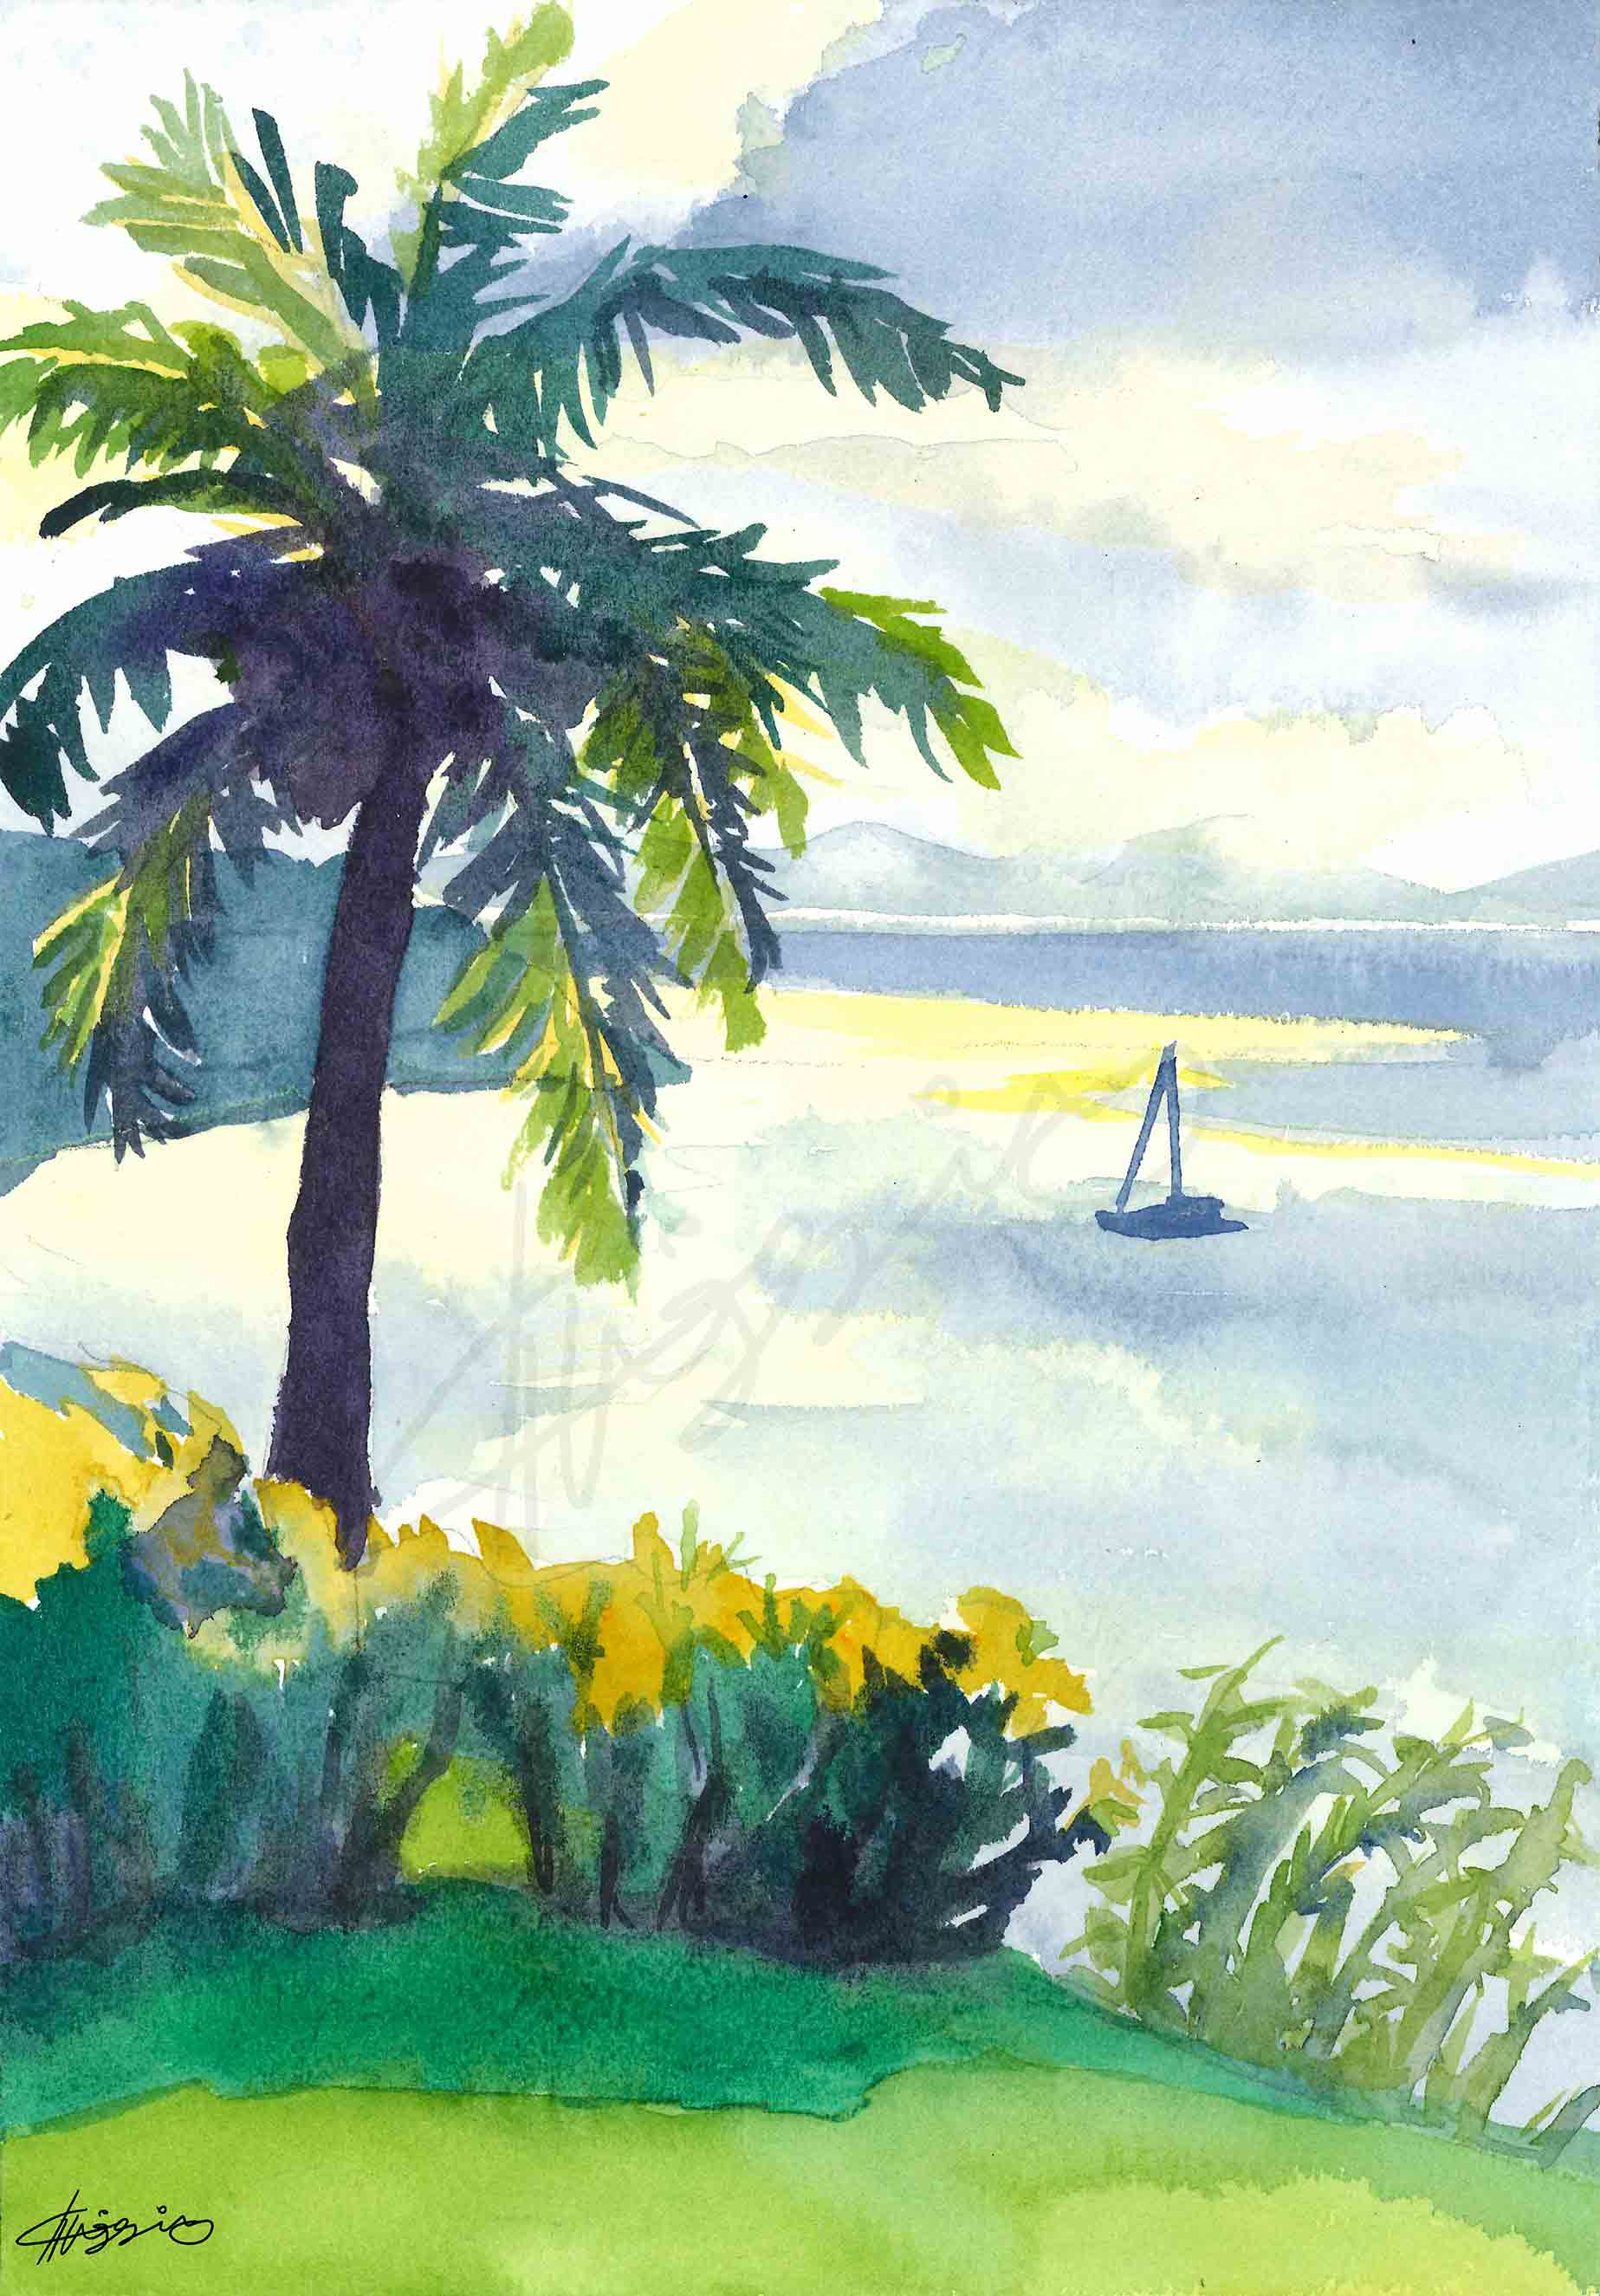 Watercolour painting of an ocean view from Taveuni island, as the evening sun filters through rain clouds to create a silvery effect on the water